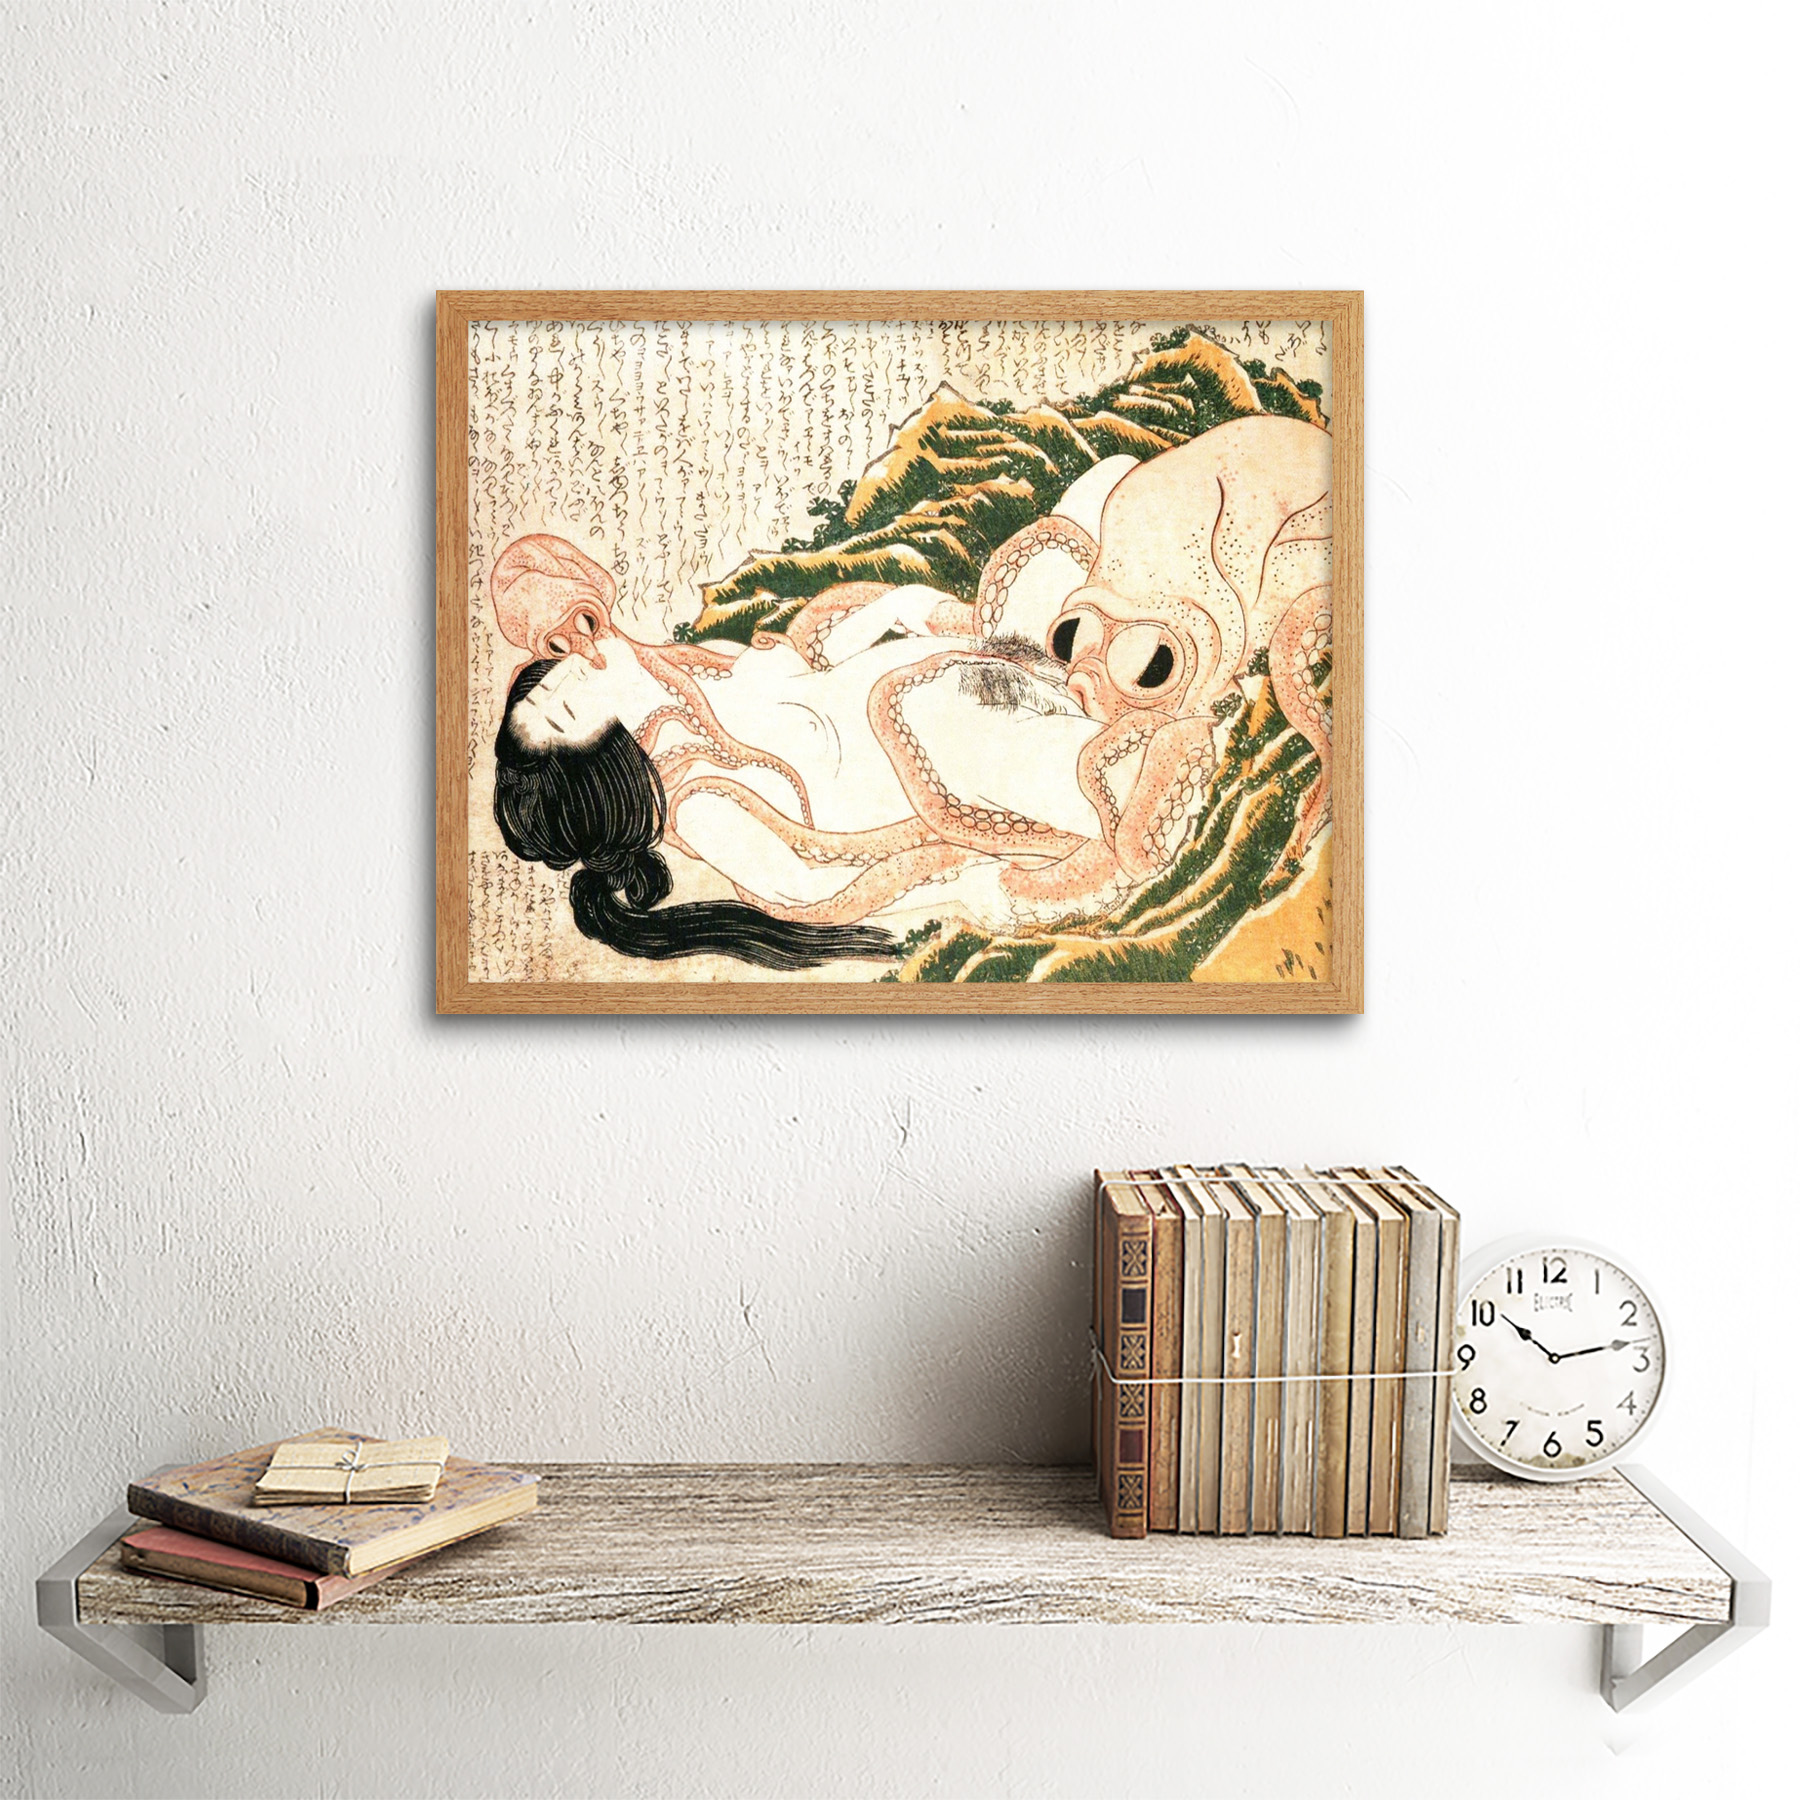 thumbnail 13 - Hokusai-Octopus-Fishermans-Wife-Dreams-Adult-Japanese-Art-Print-Framed-12x16